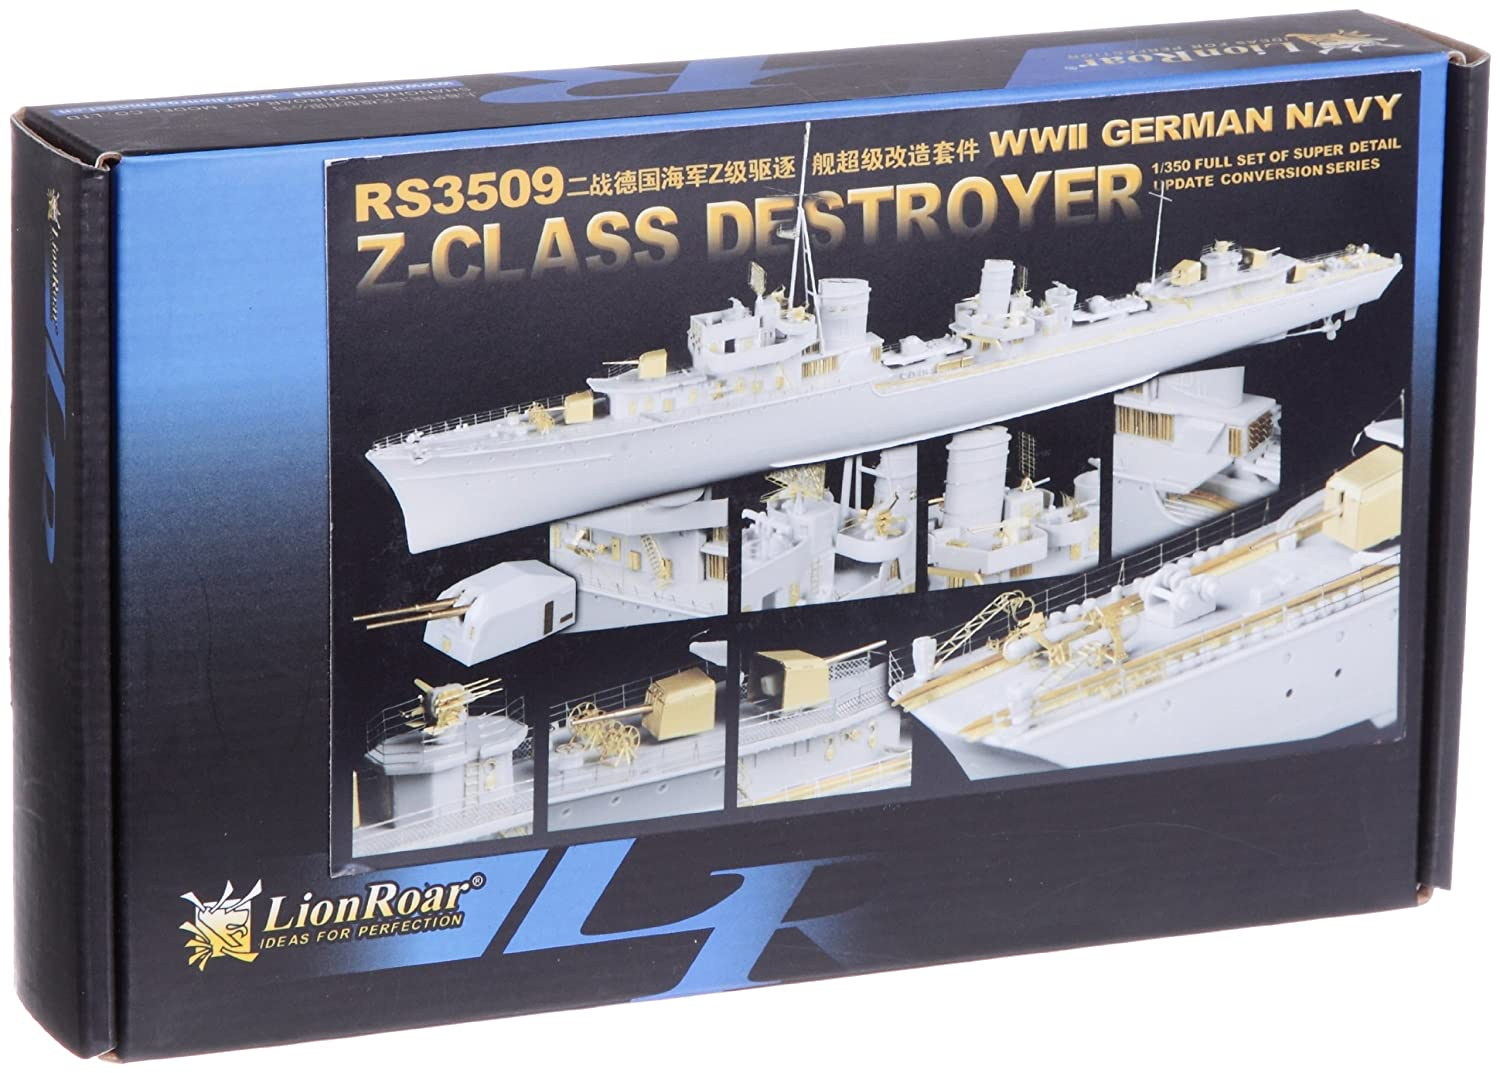 1/350 WWII German Navy Z-class destroyer for Detail Up Parts Set (D Company / TP for company) (RS3509) (japan import)